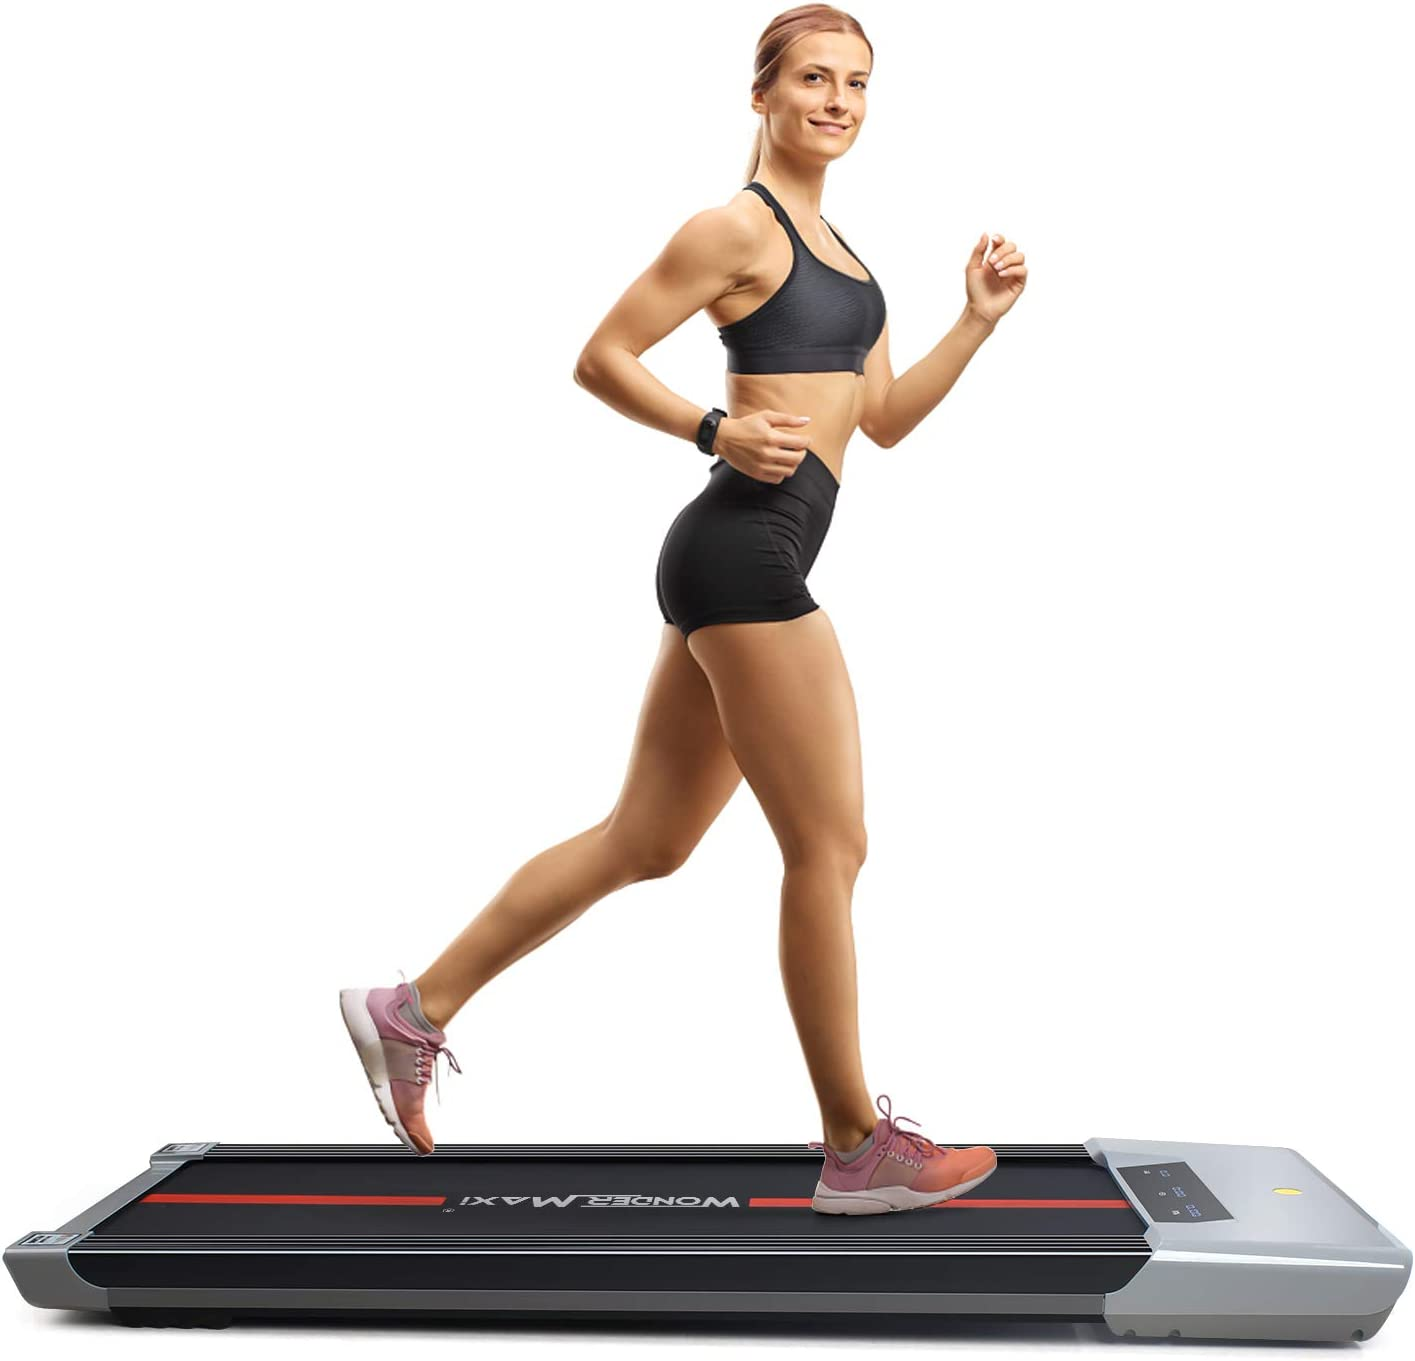 Wonder Maxi Under Desk Treadmill Workout Running Machine with LCD and Remote Control Portable Compact Treadmill for Jogging and Walking Exercise Home Gym